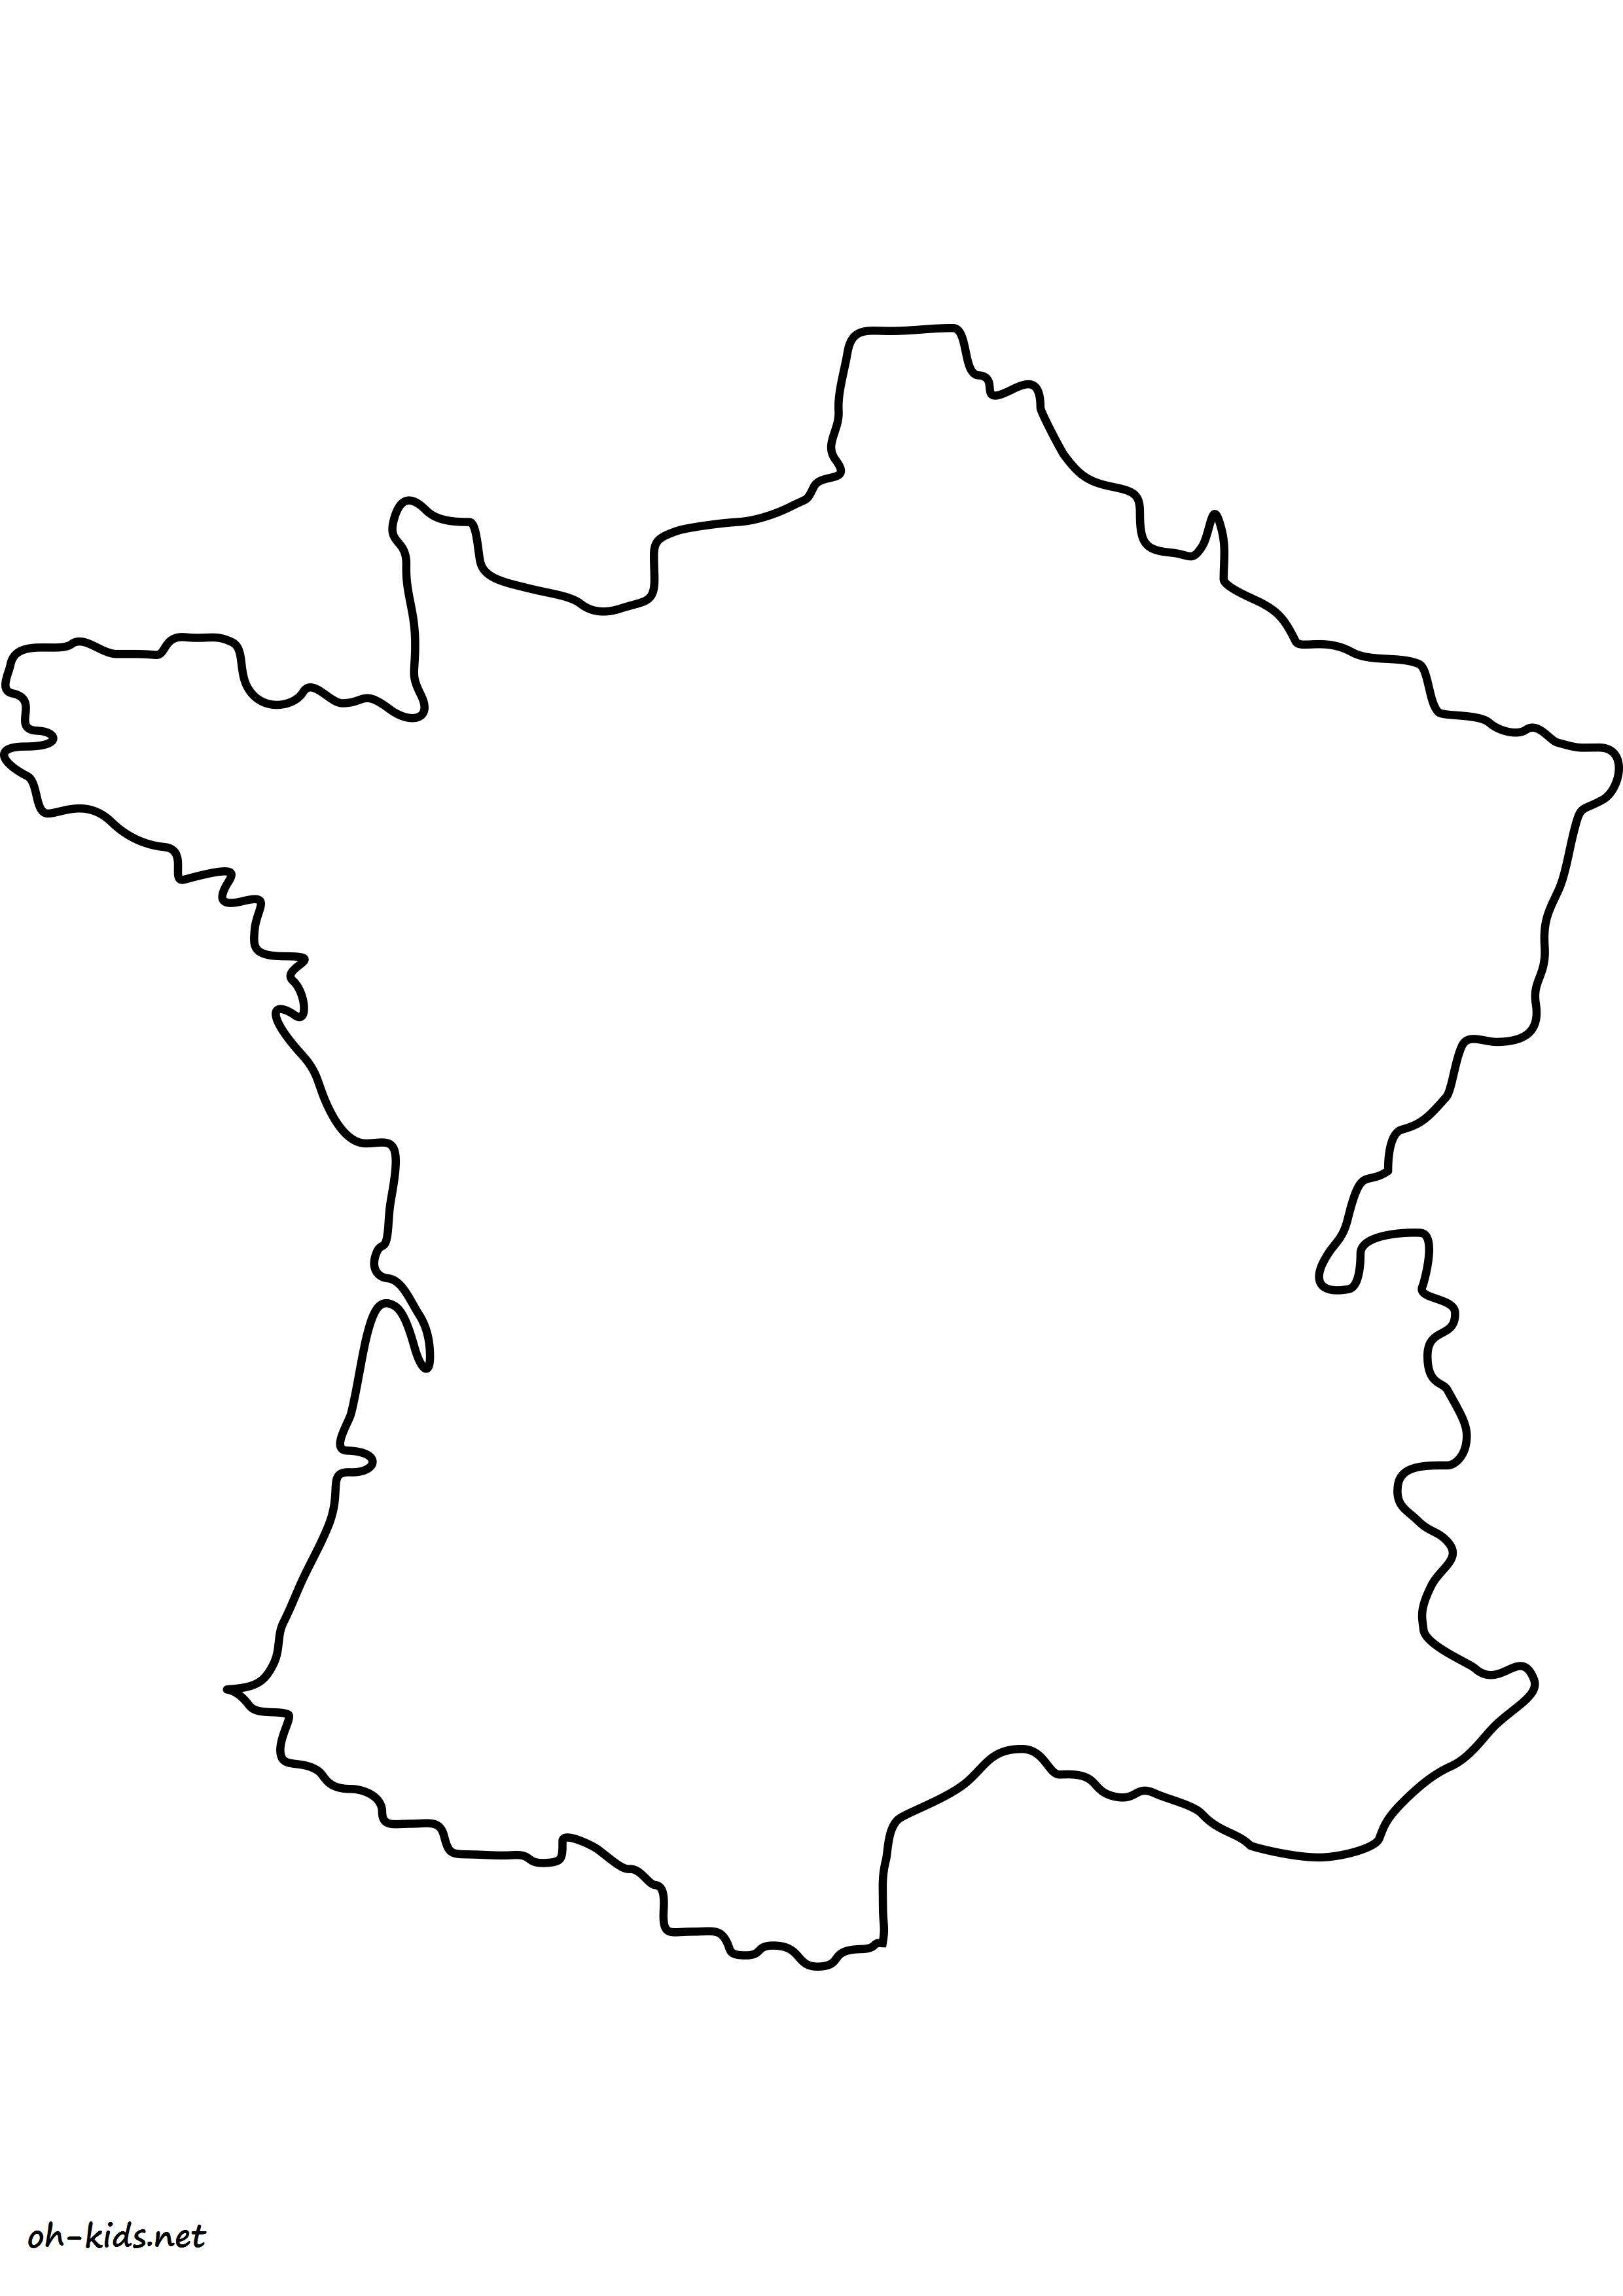 2480 x 3508 jpeg 128kb dessin 643 coloriage france 224 imprimer